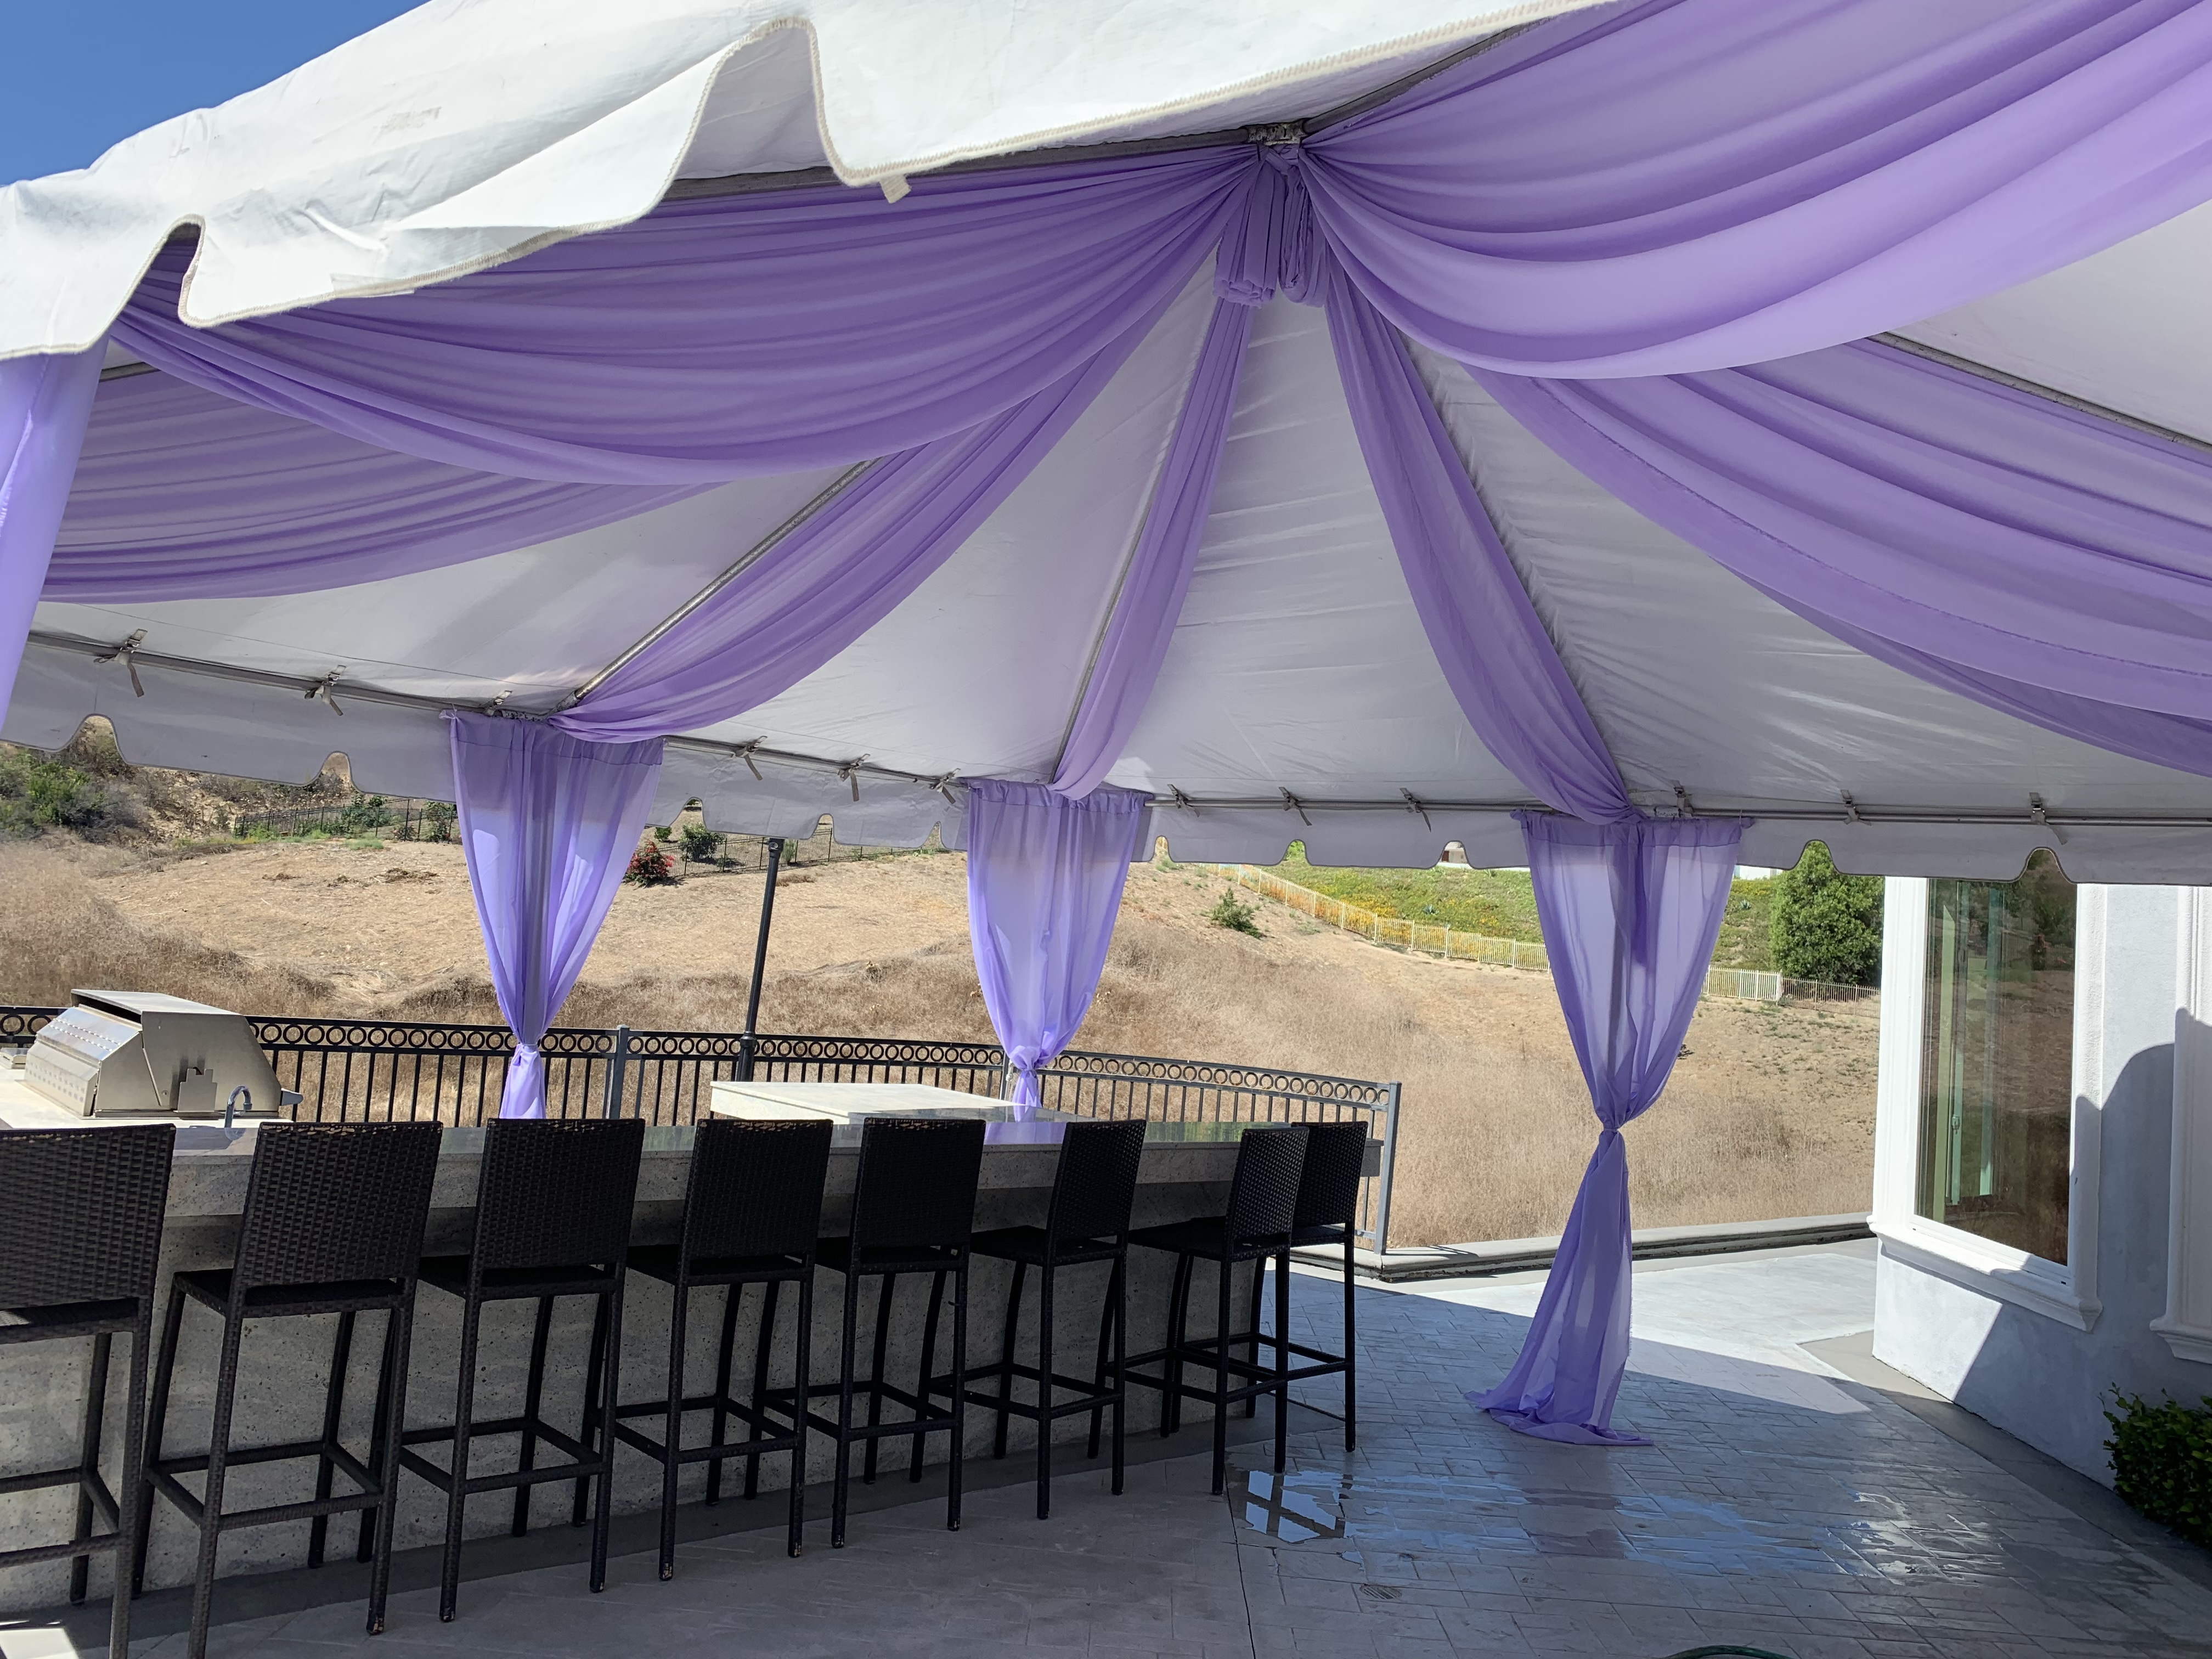 Canopy with Purple Design.